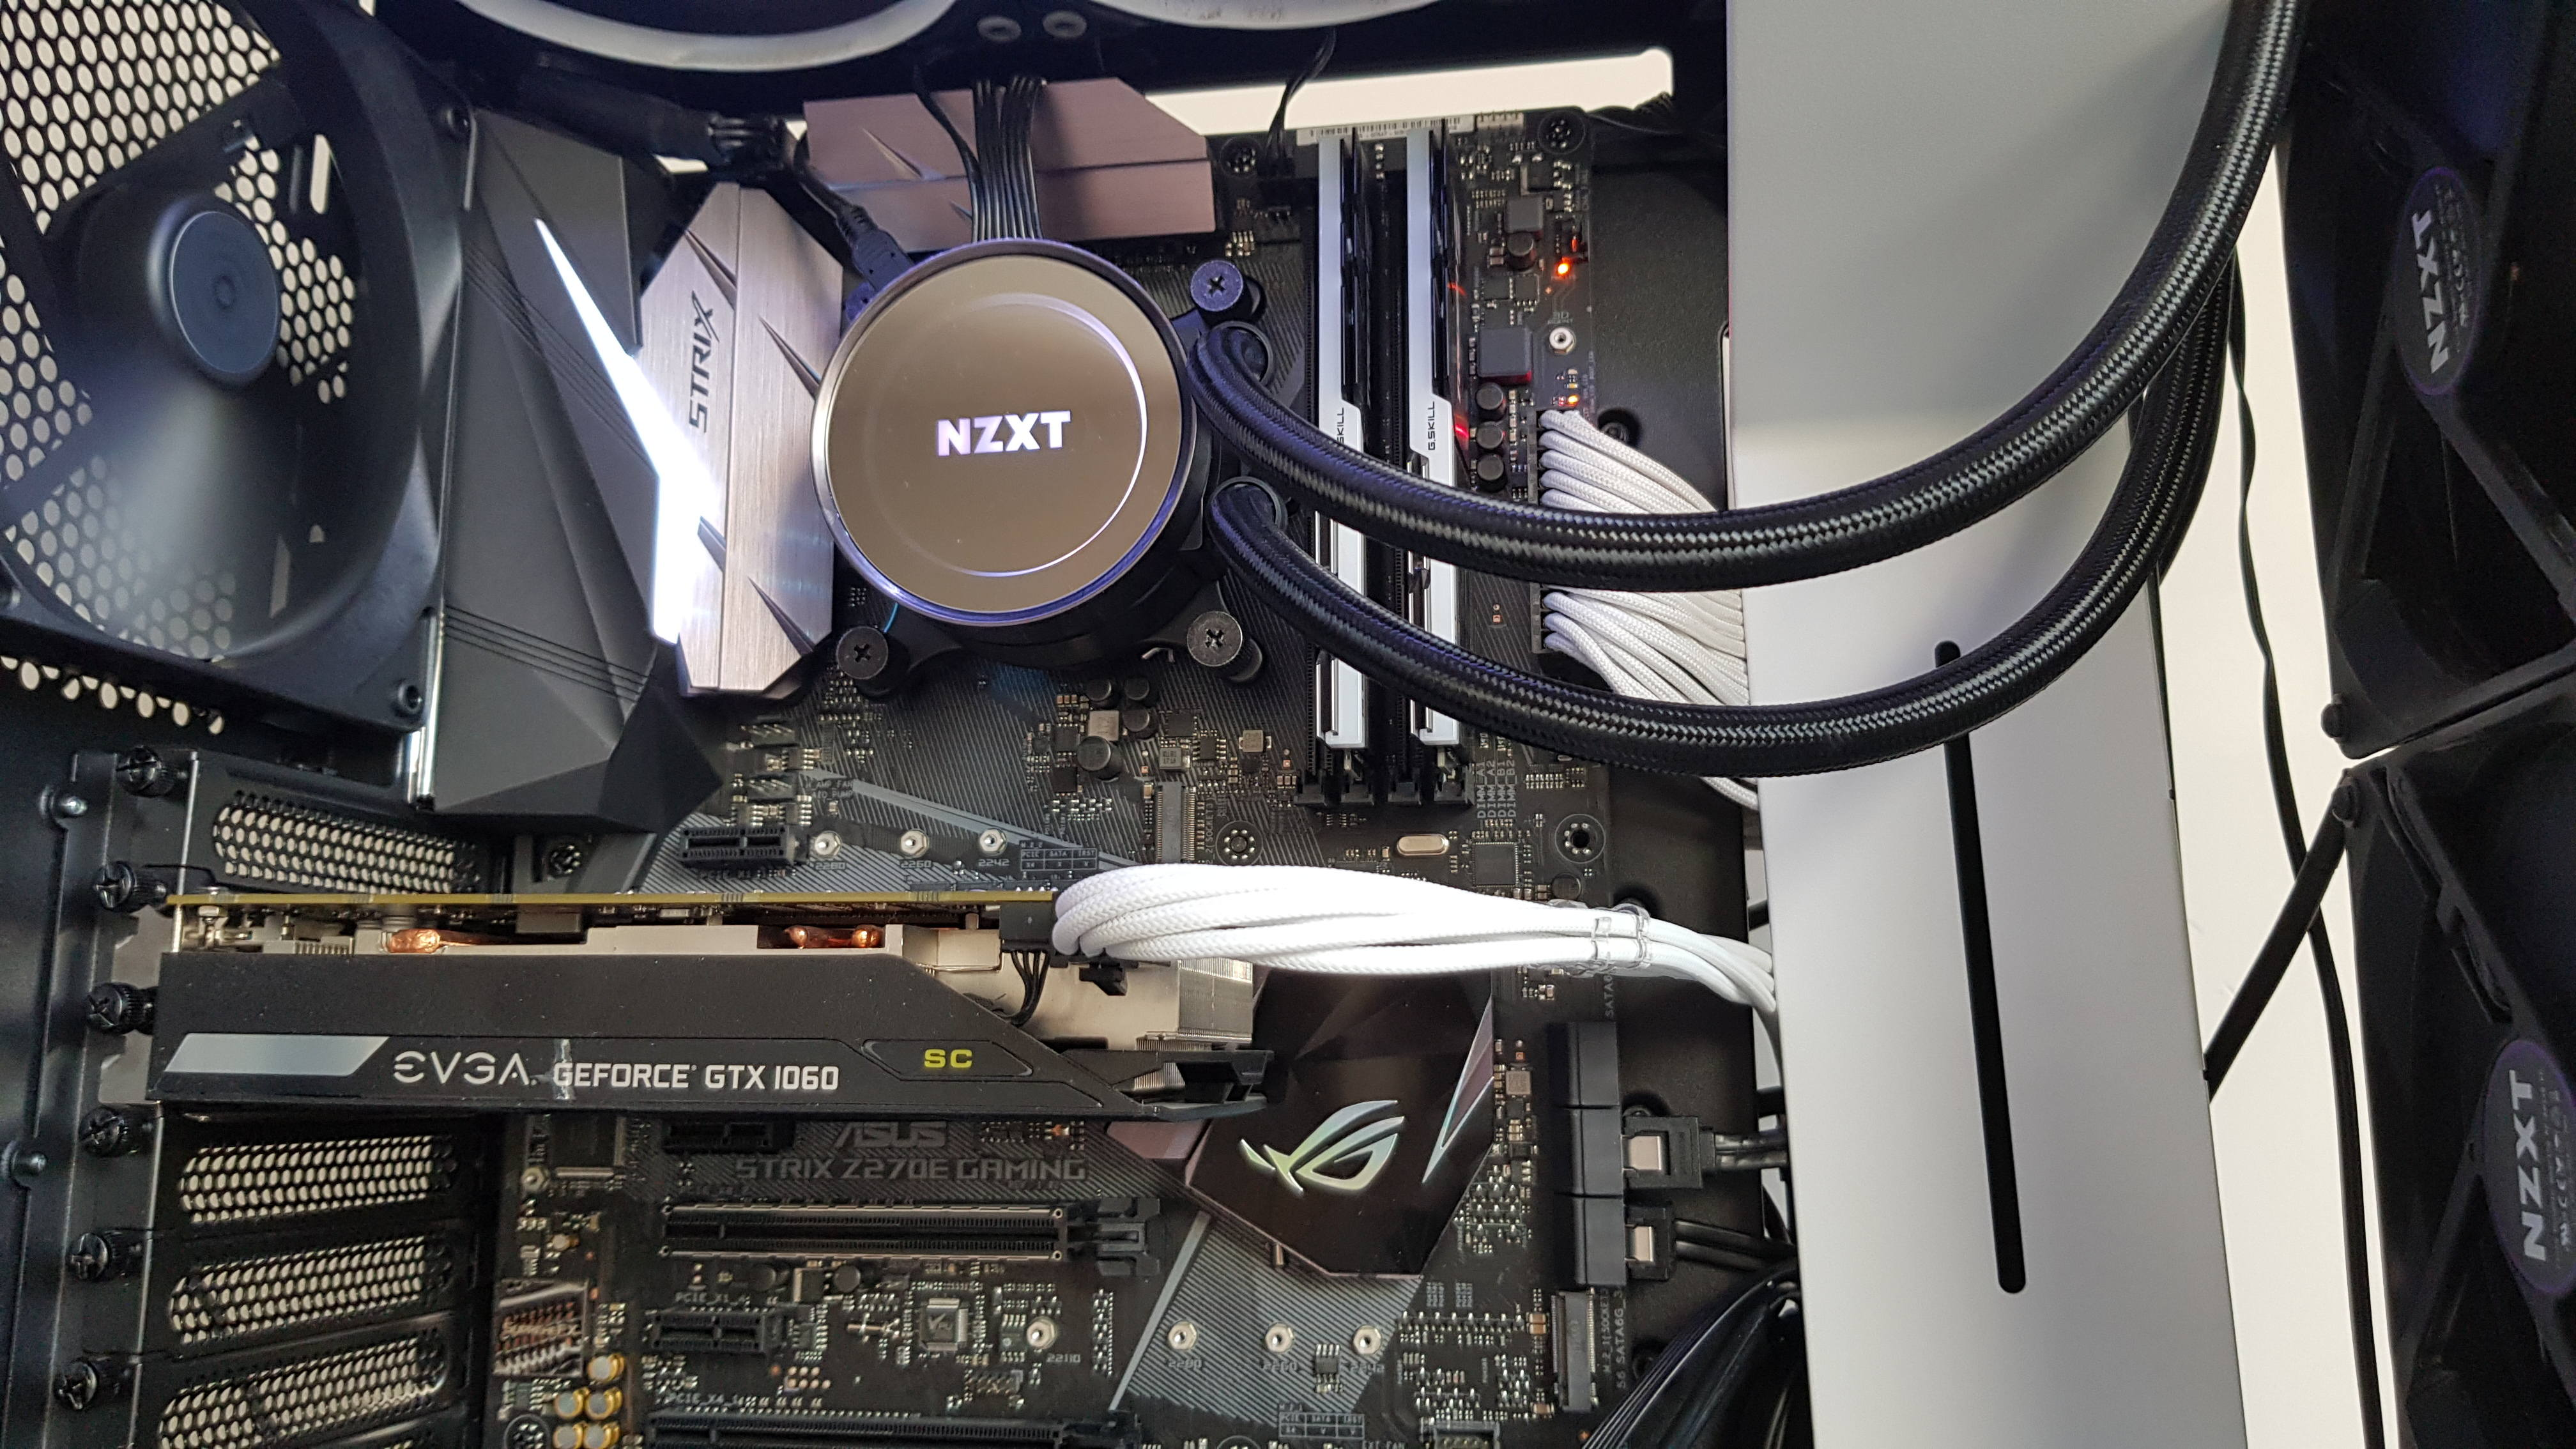 High cpu temps with aio - Liquid and Exotic Cooling - Linus